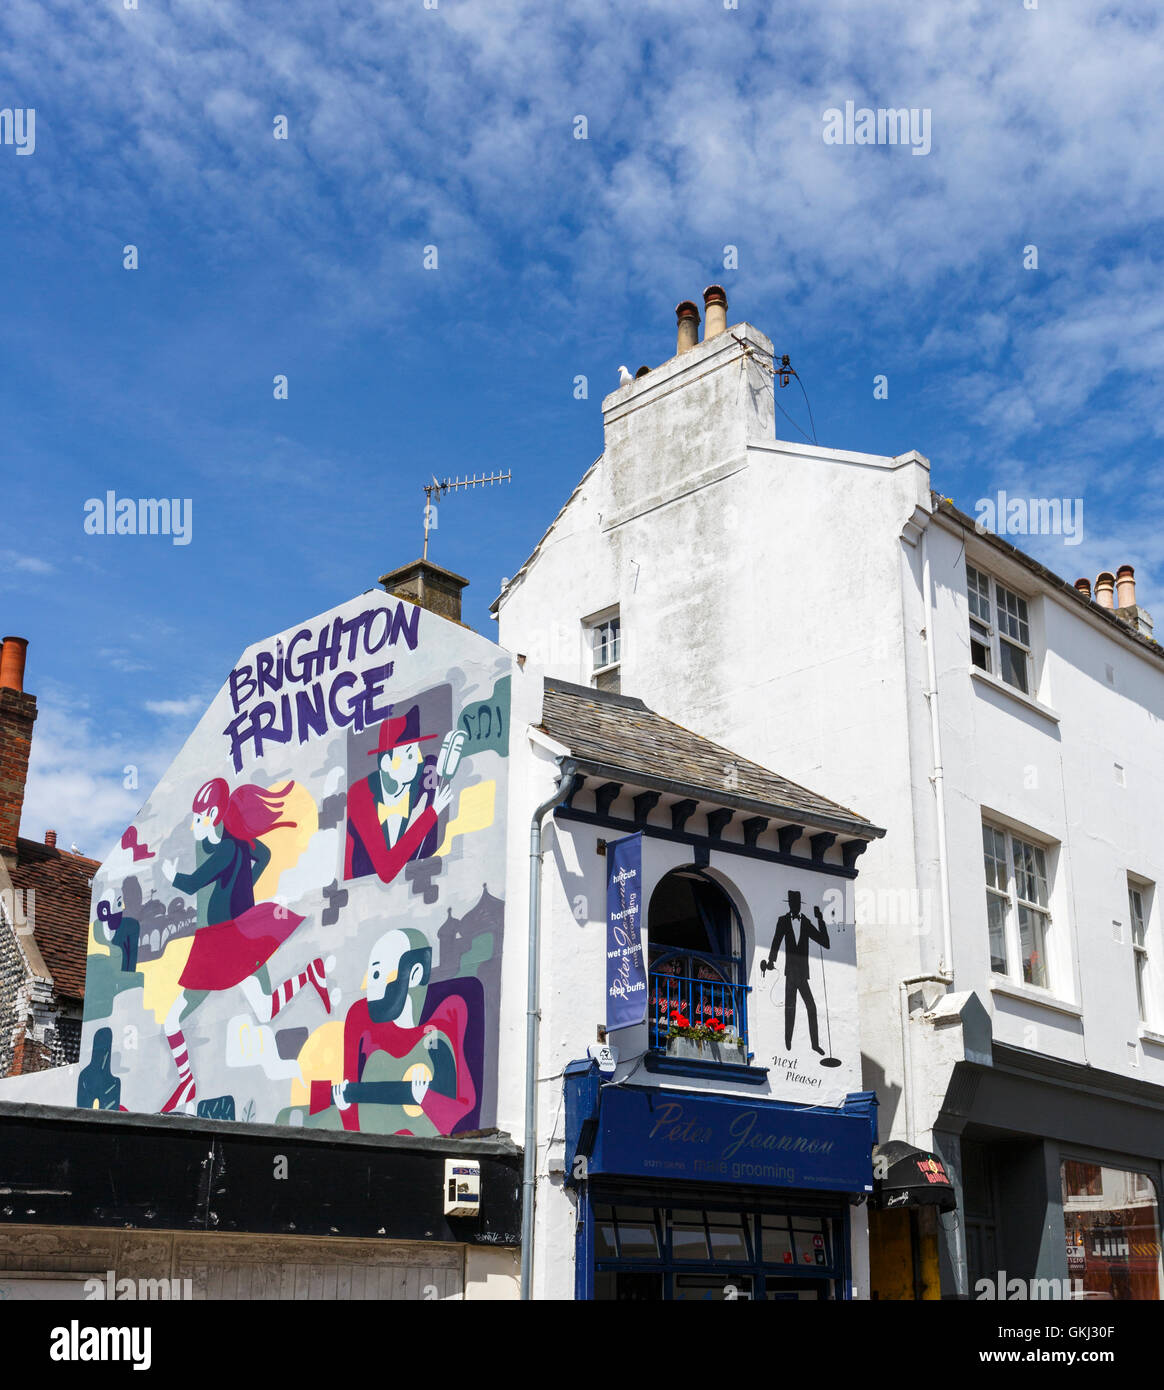 Mural advertising the Brighton Fringe arts festival in The Lanes, Brighton, East Sussex, UK on a sunny summer day - Stock Image